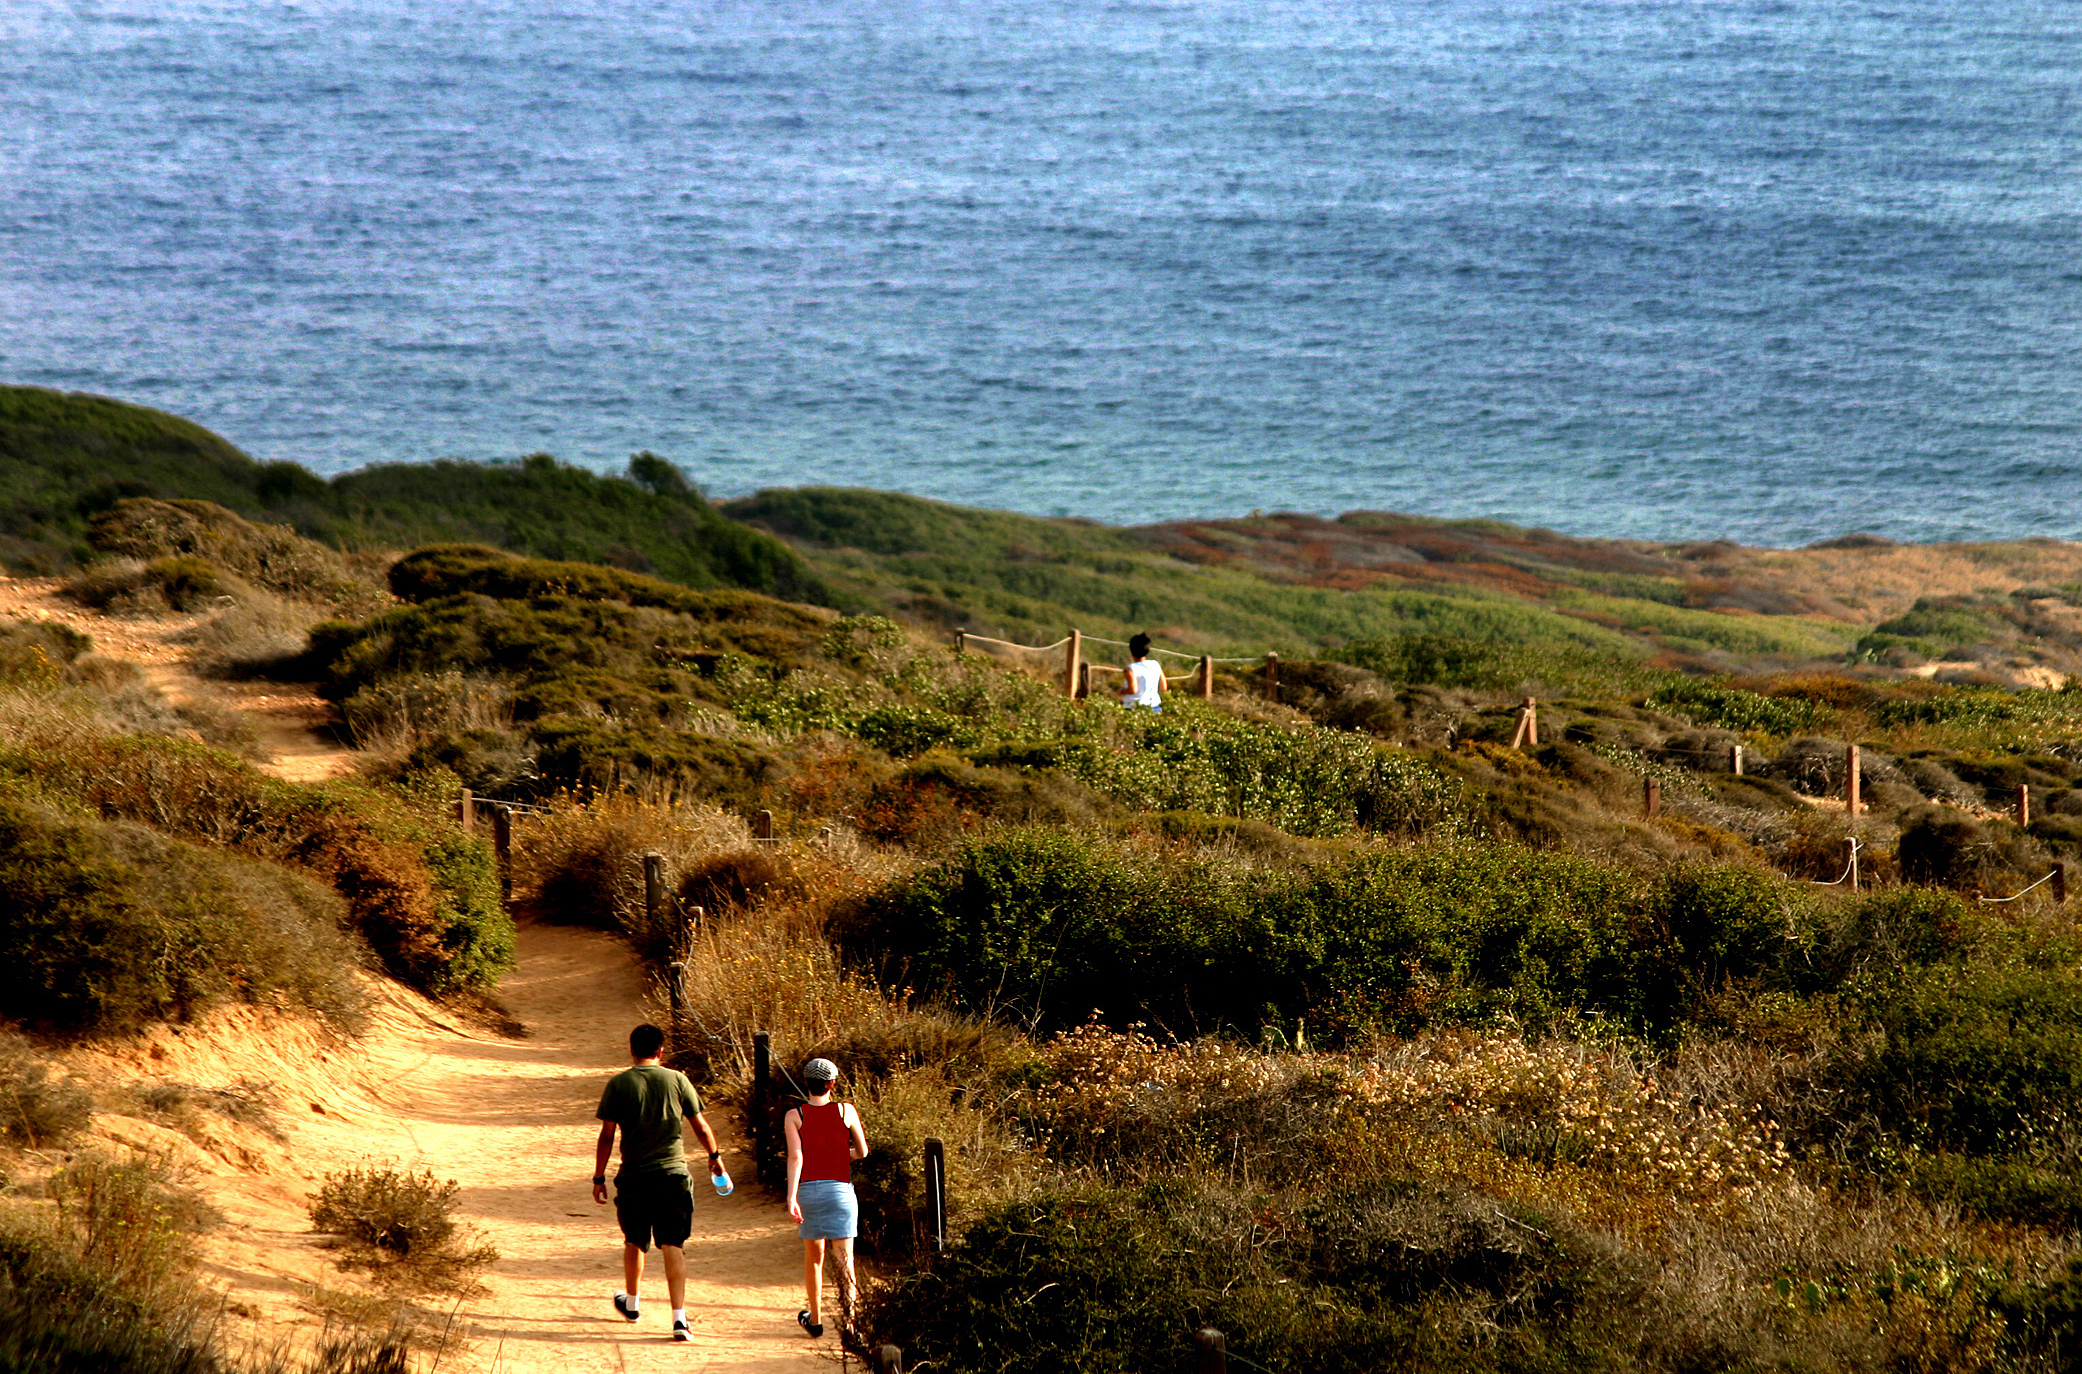 Hiking trough La Jolla's Torrey Pines State Park